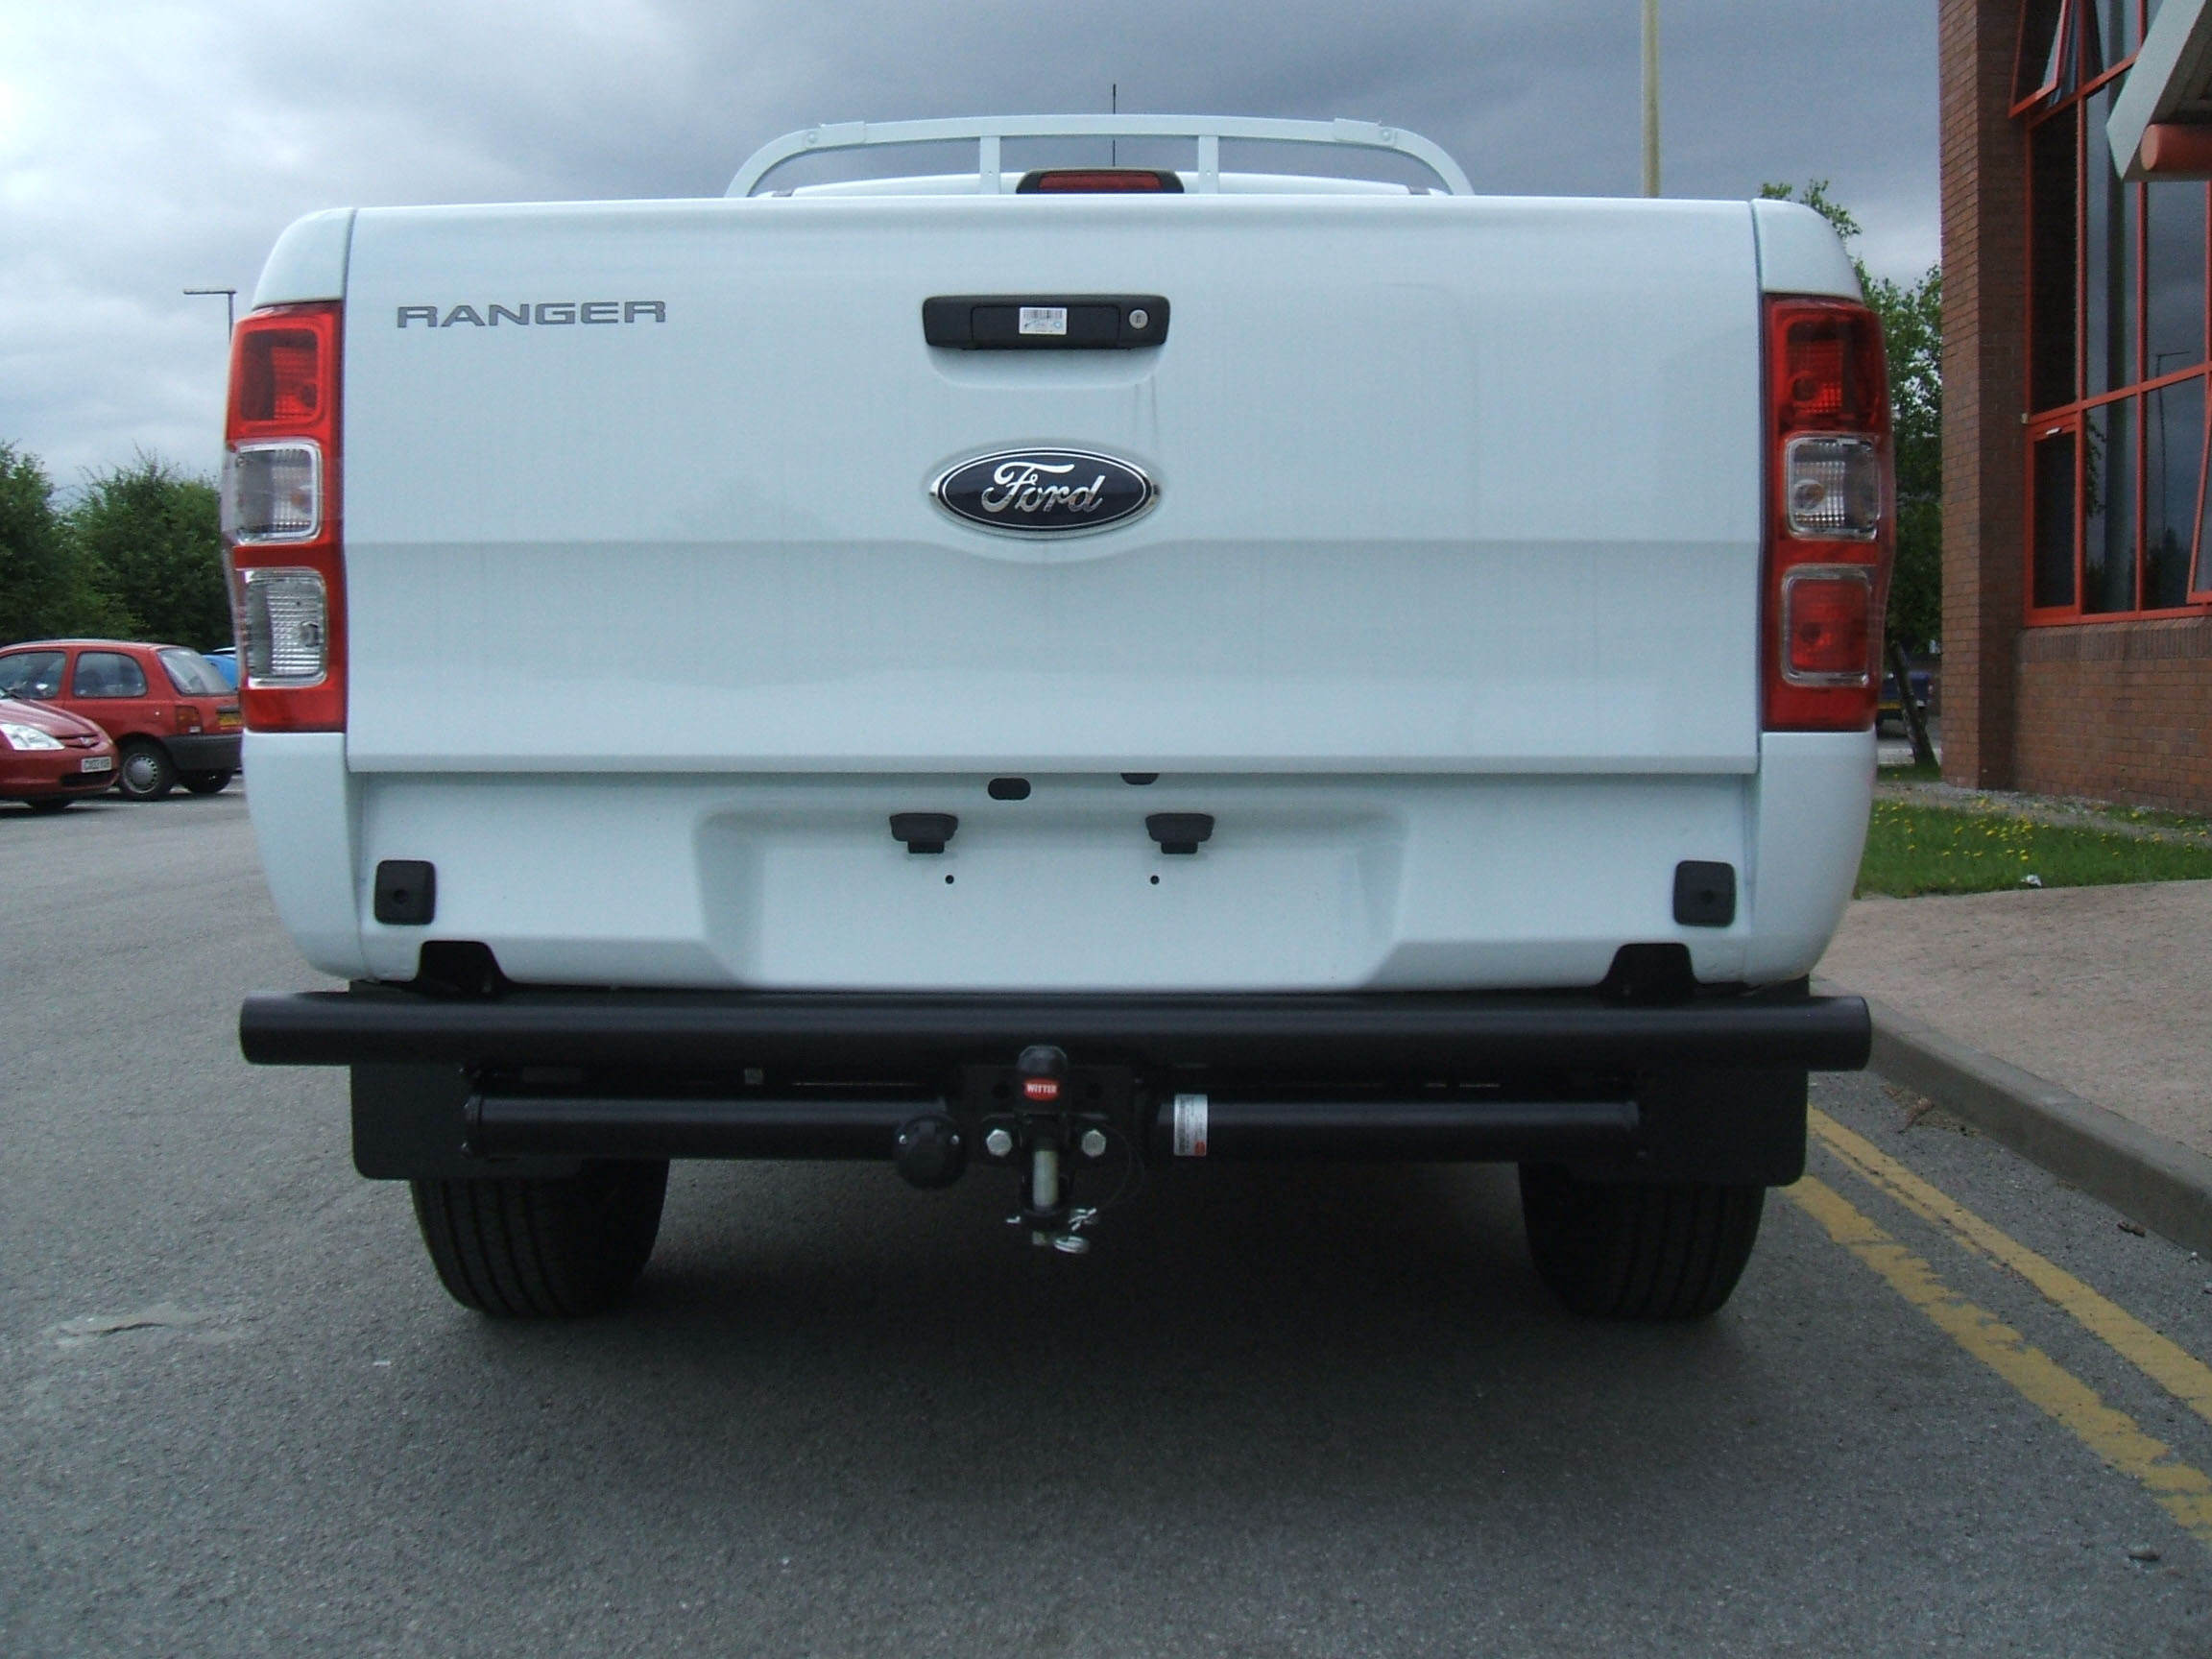 F158 ford ranger pickup 2012 2015 witter flange tow bar witter towbar wiring diagram at crackthecode.co